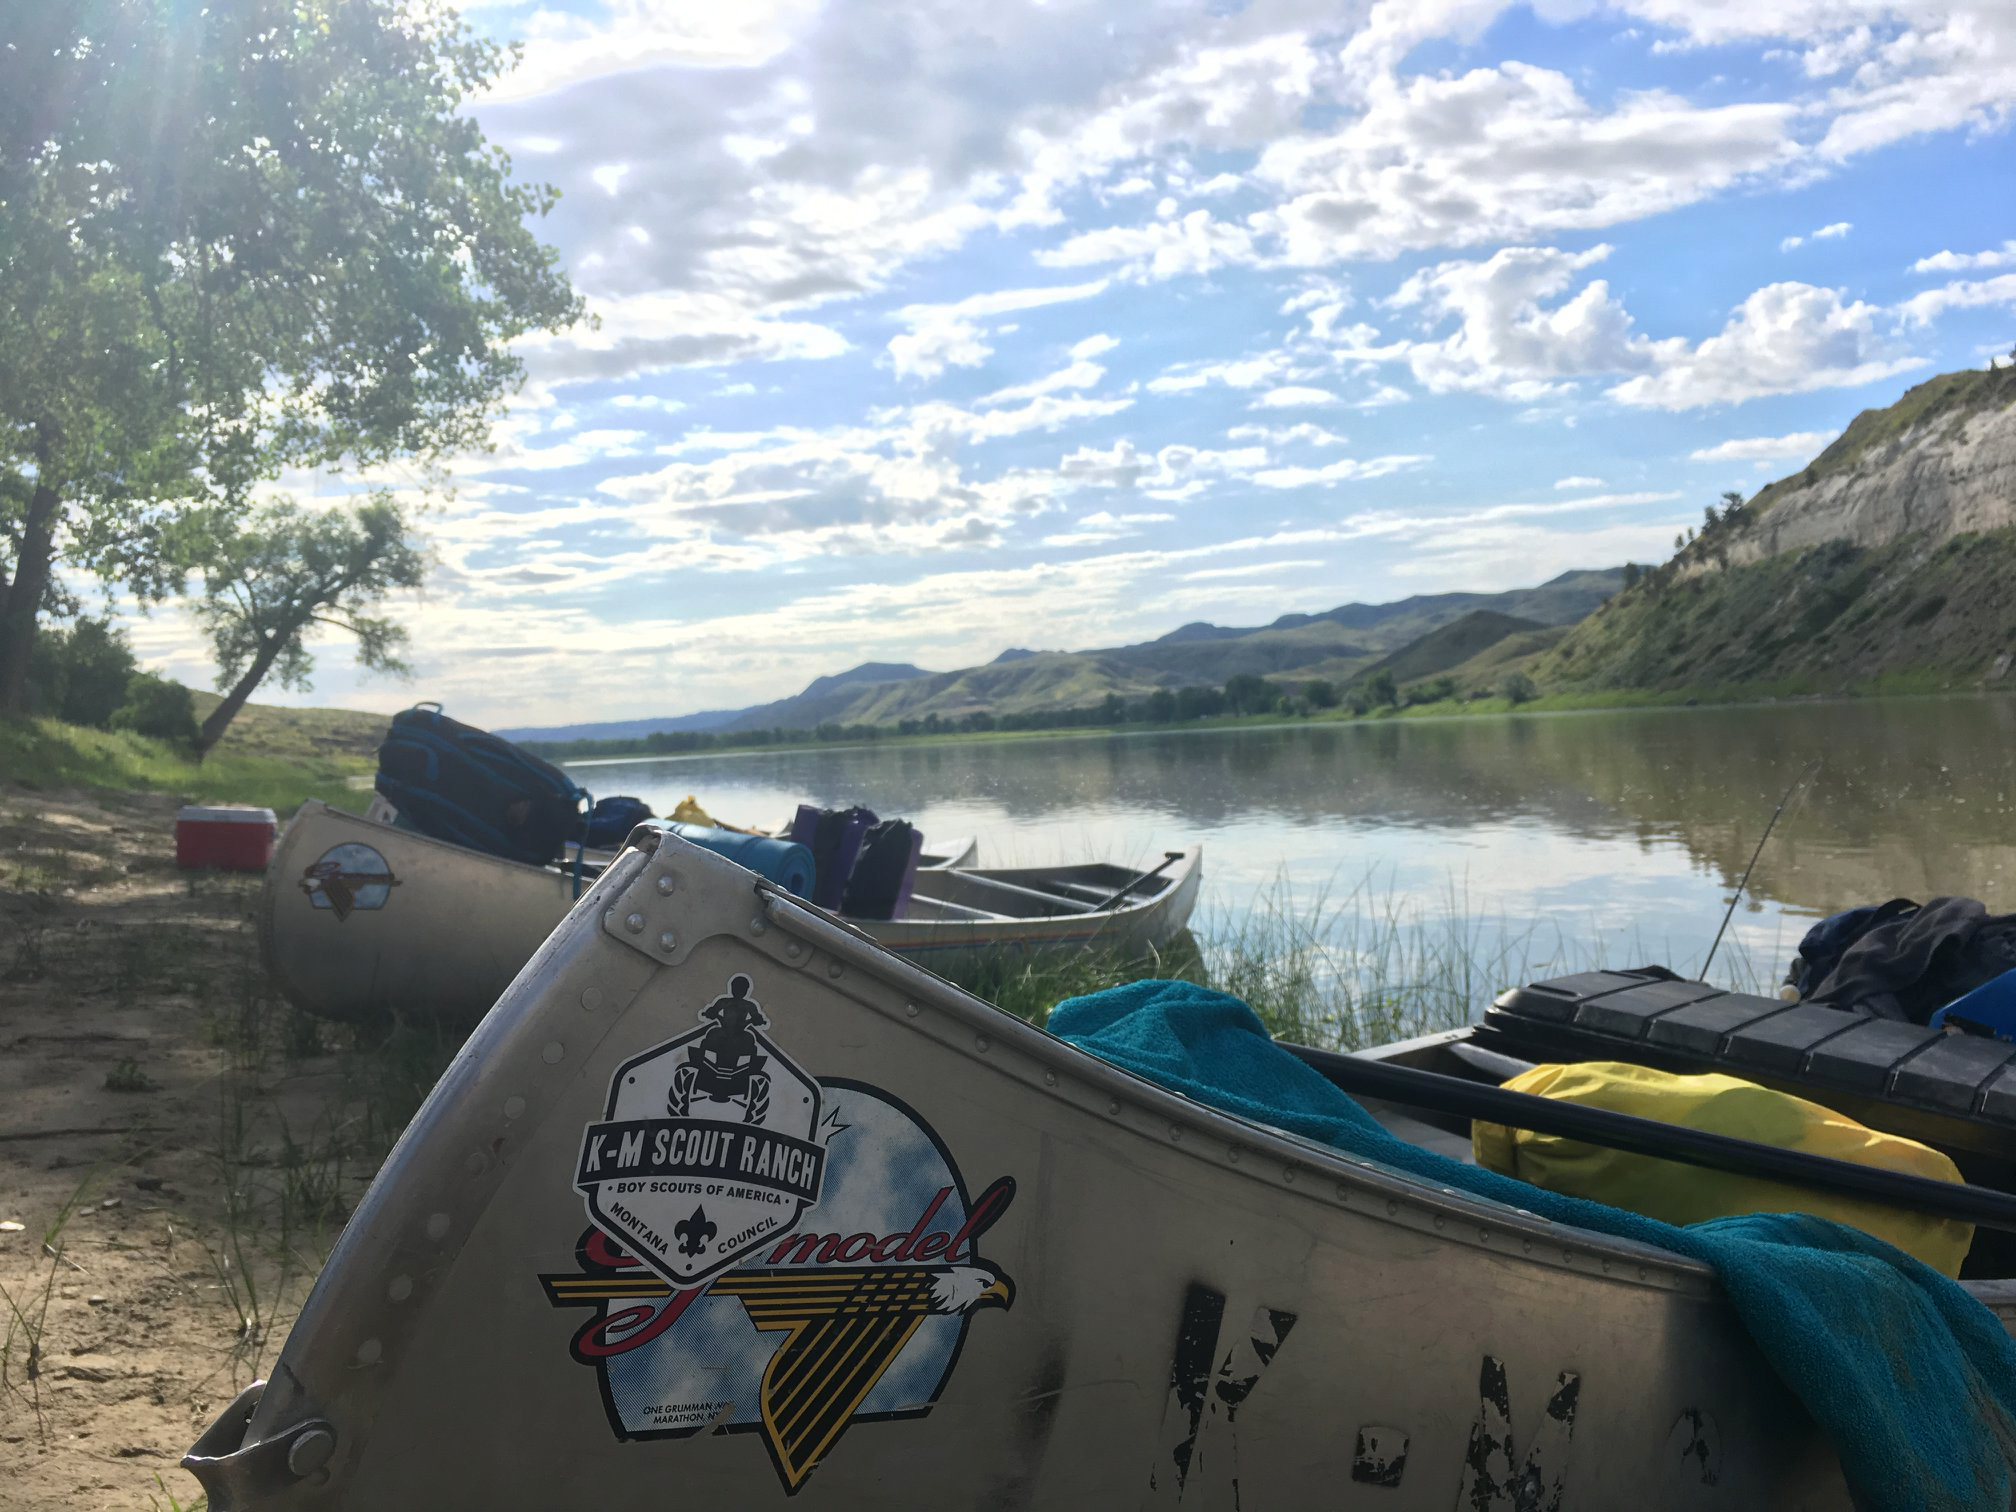 Photo Contest Winner, Youth 2nd place: K-M Missouri River Trek Summer 2019 #2 by Gavin C., Troop 1936, Whitefish.